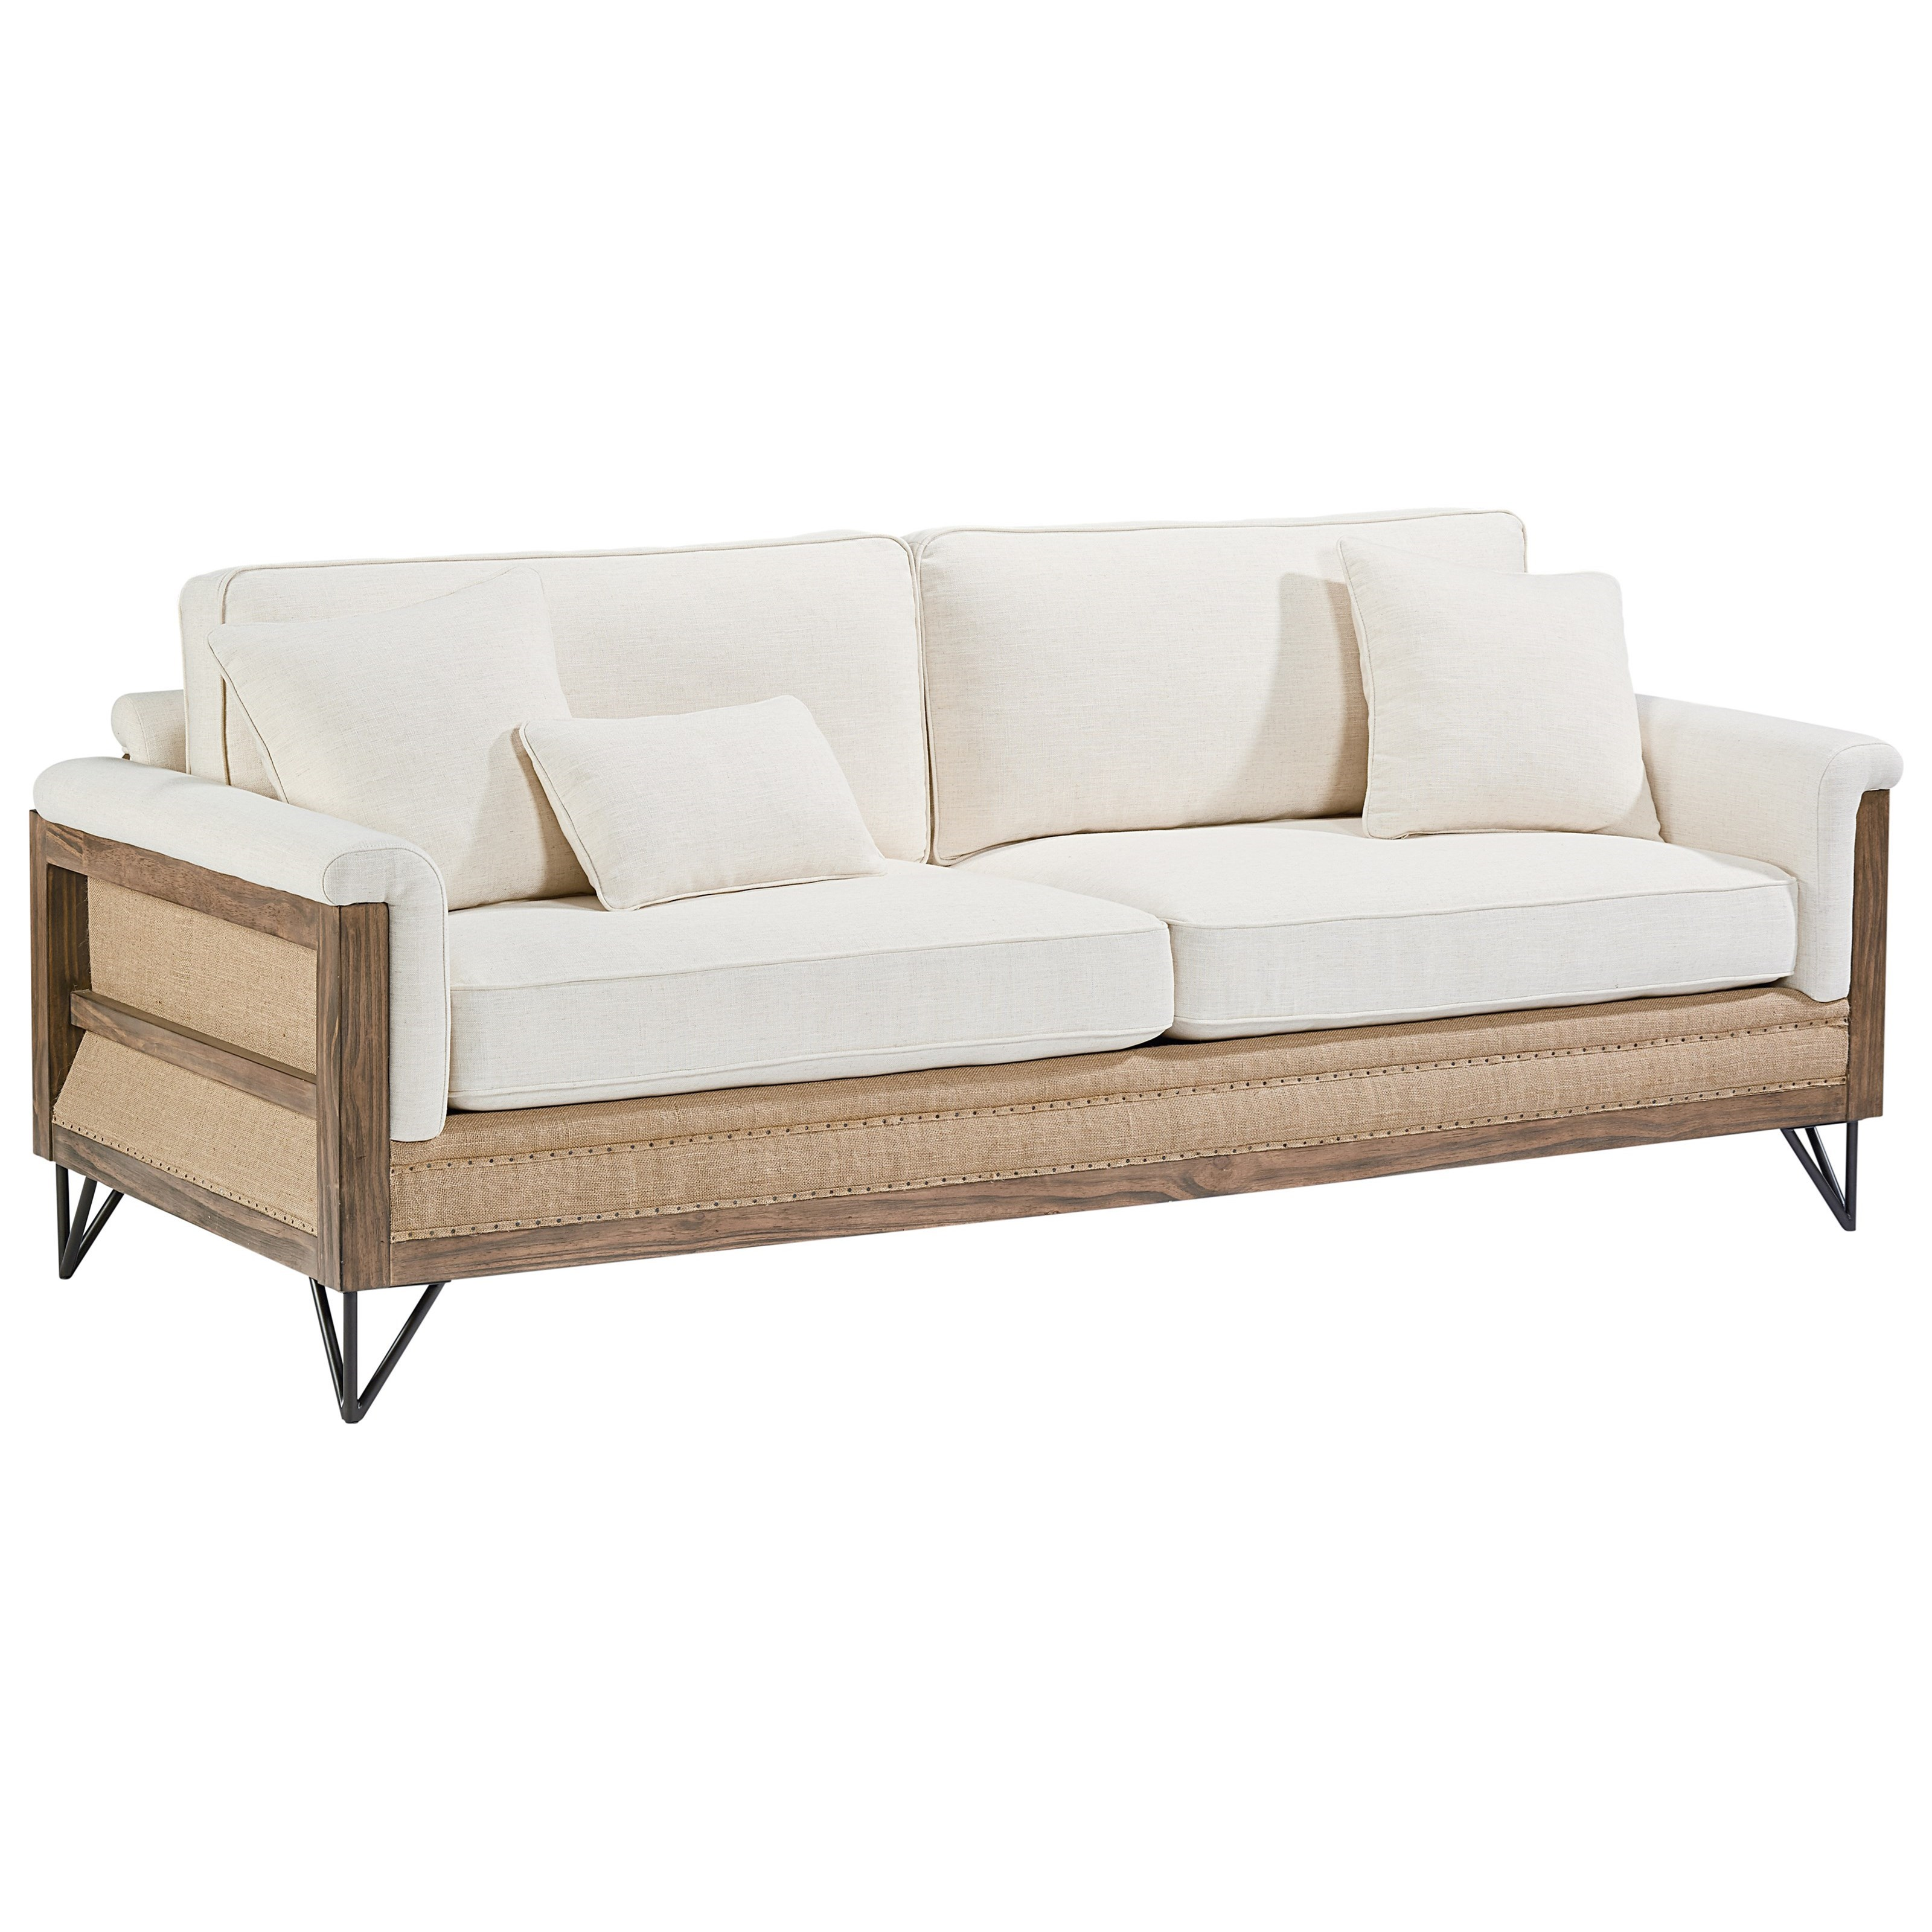 Paradigm sofa with exposed wood frame by magnolia home by for Couch lounge